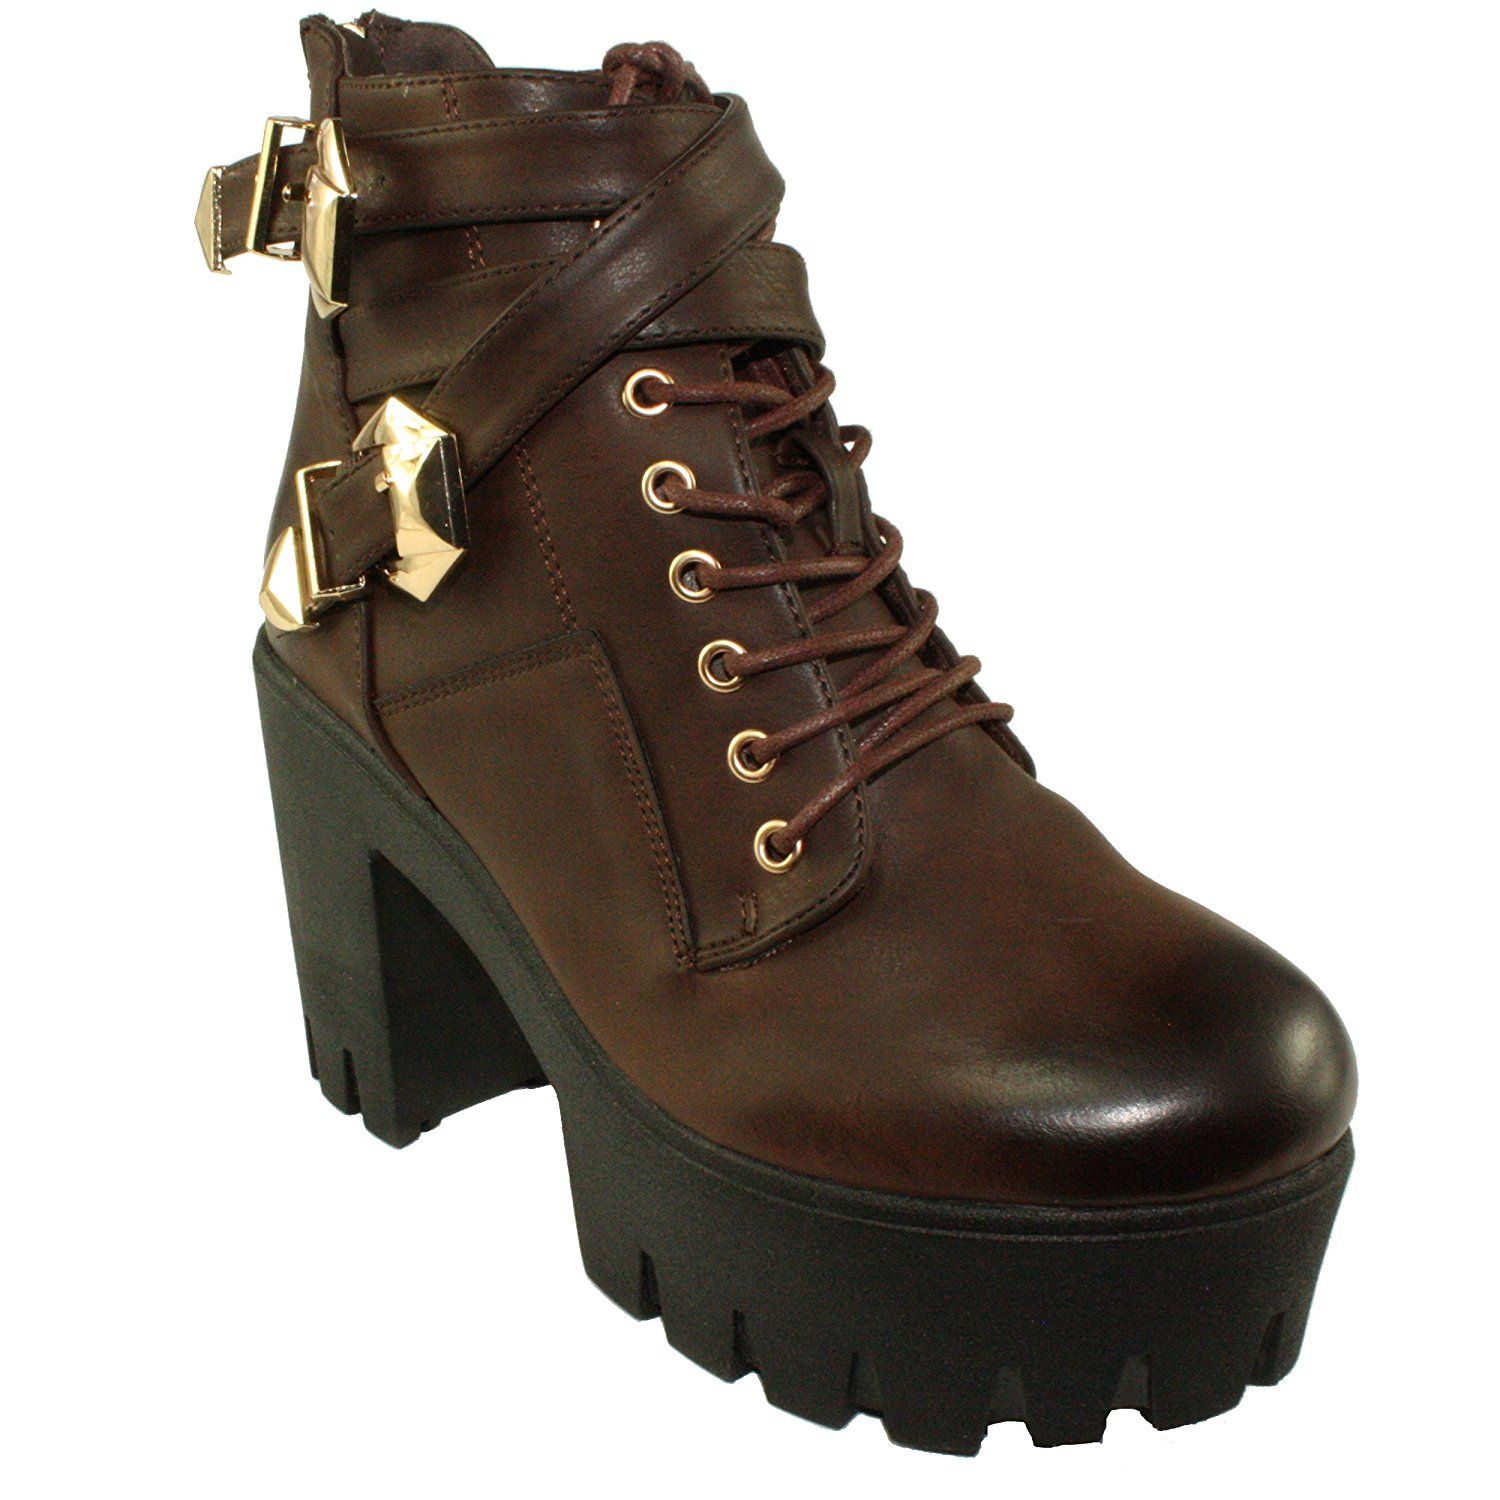 BellaMarie Women's Diva-11 Lug Sole Lace up Platform Chunky Heel Zip-up Closure Ankle Boots